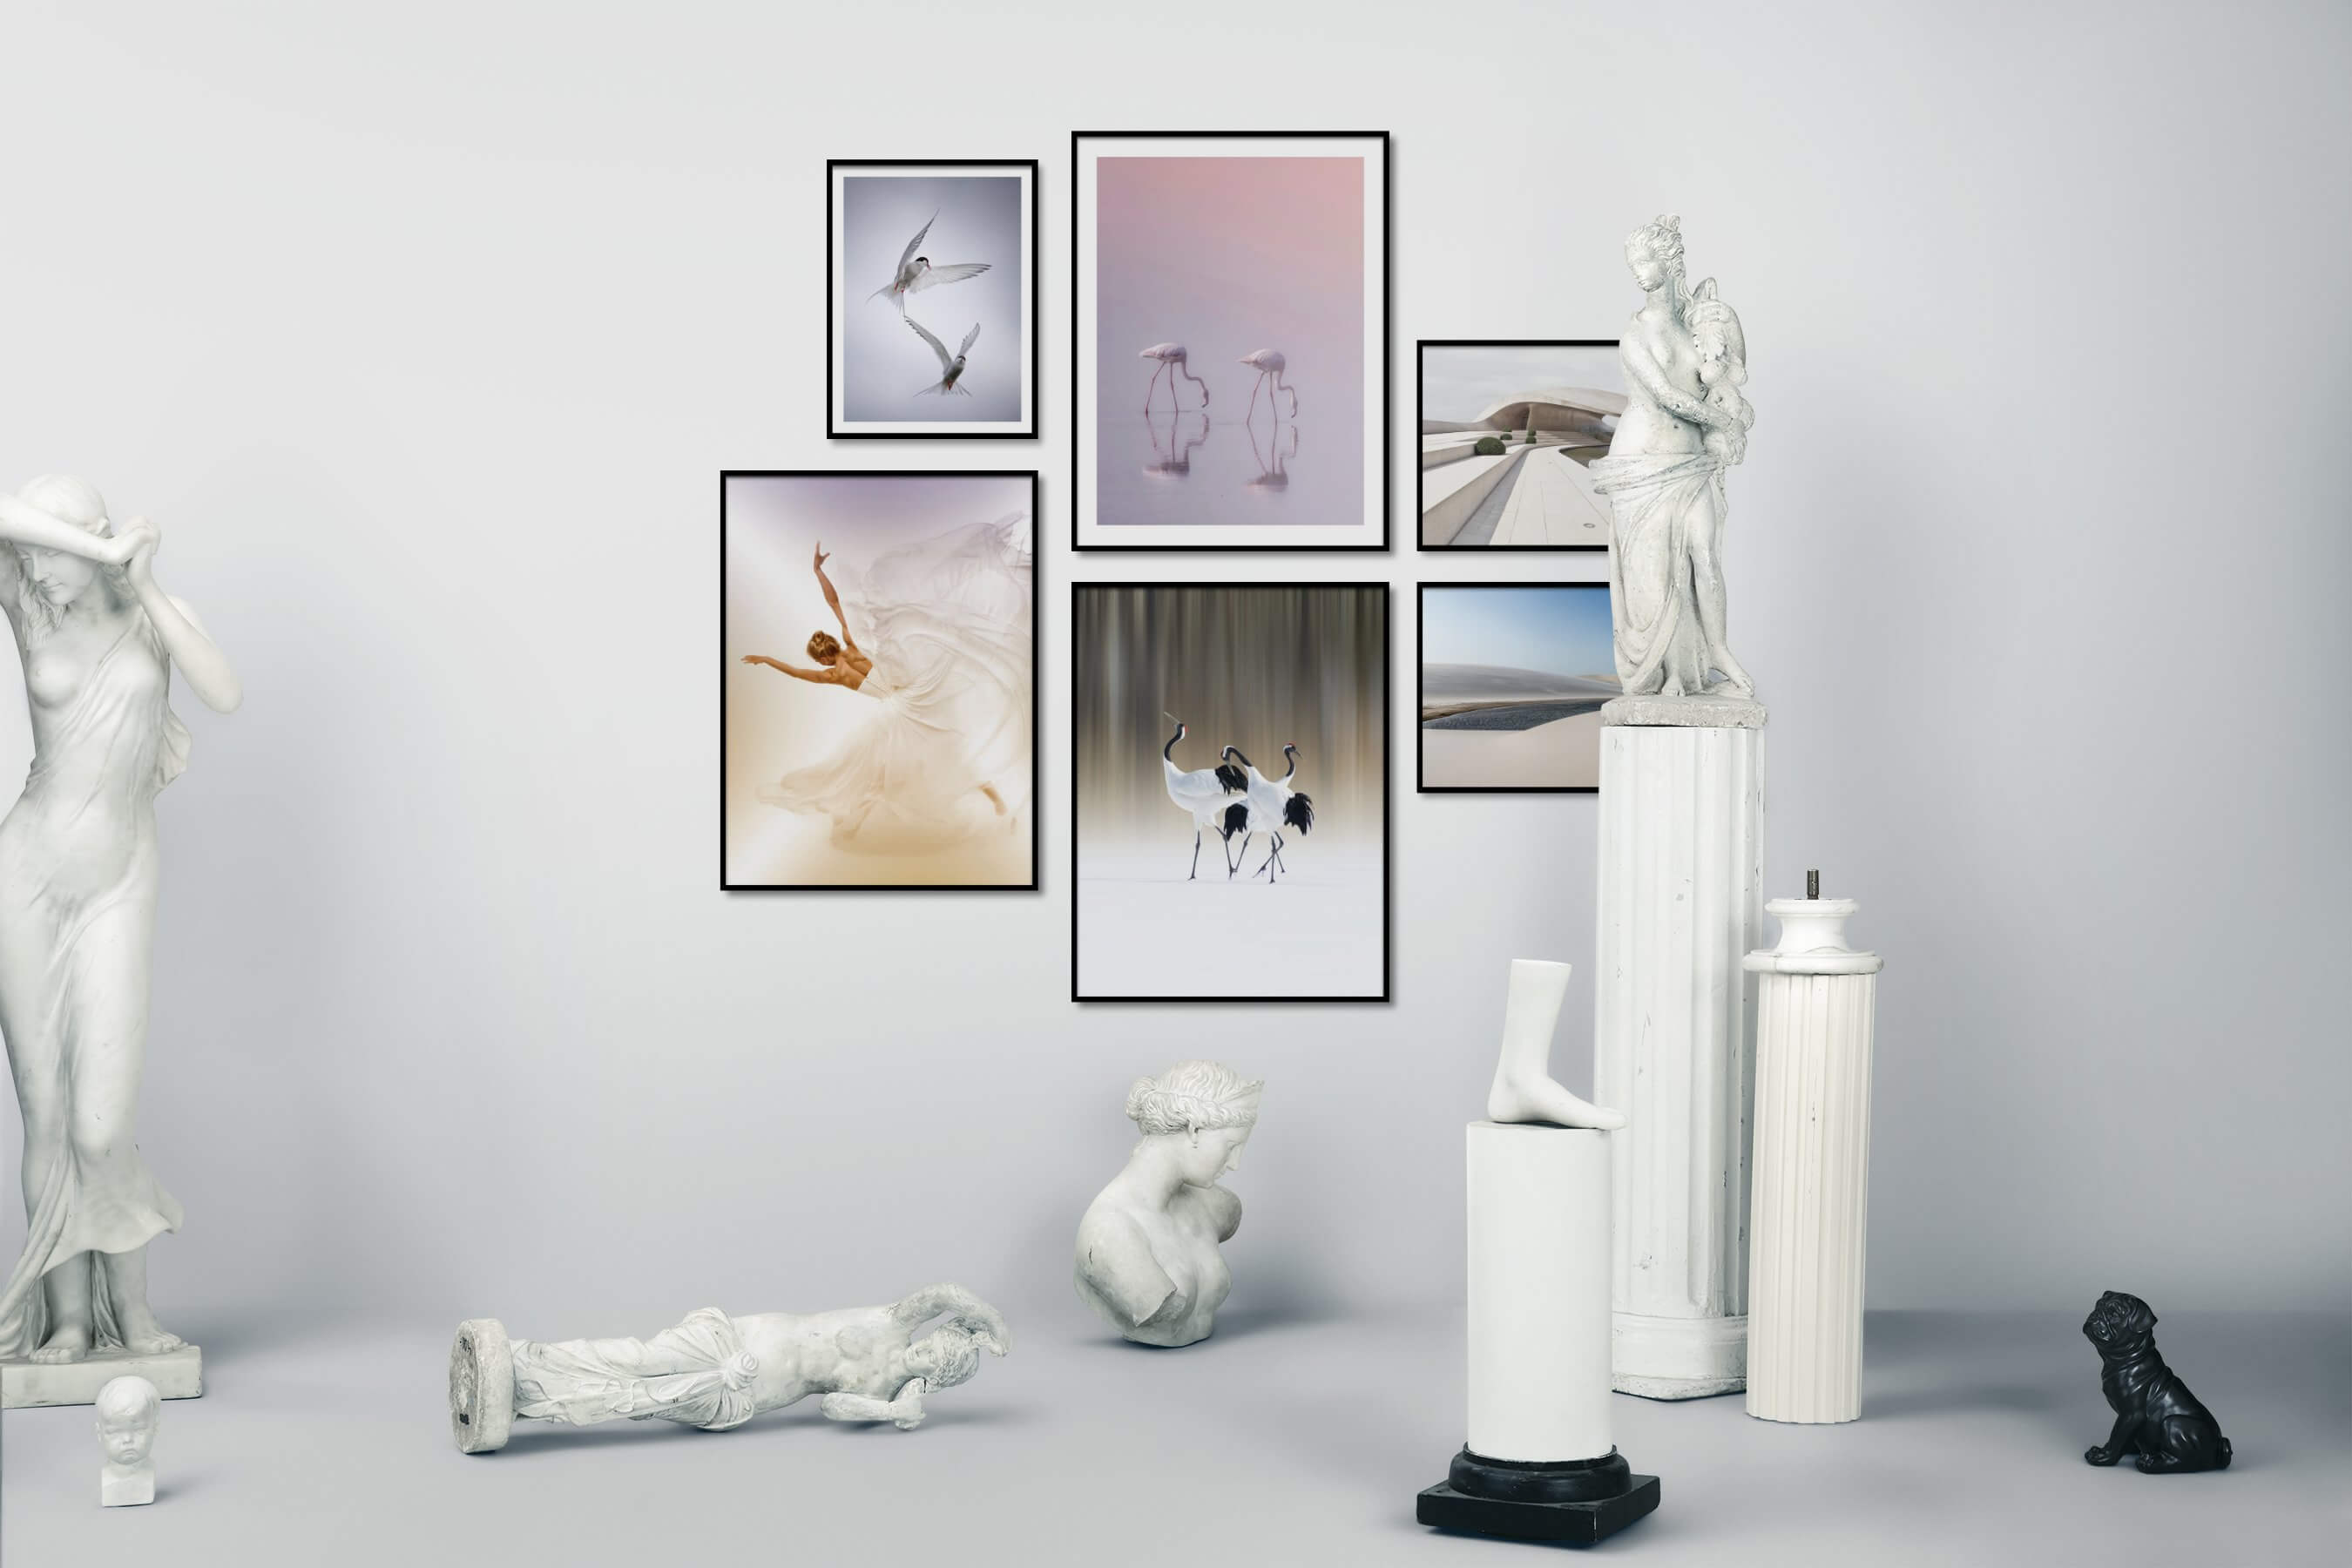 Gallery wall idea with six framed pictures arranged on a wall depicting For the Minimalist, Animals, Fashion & Beauty, For the Moderate, and Nature